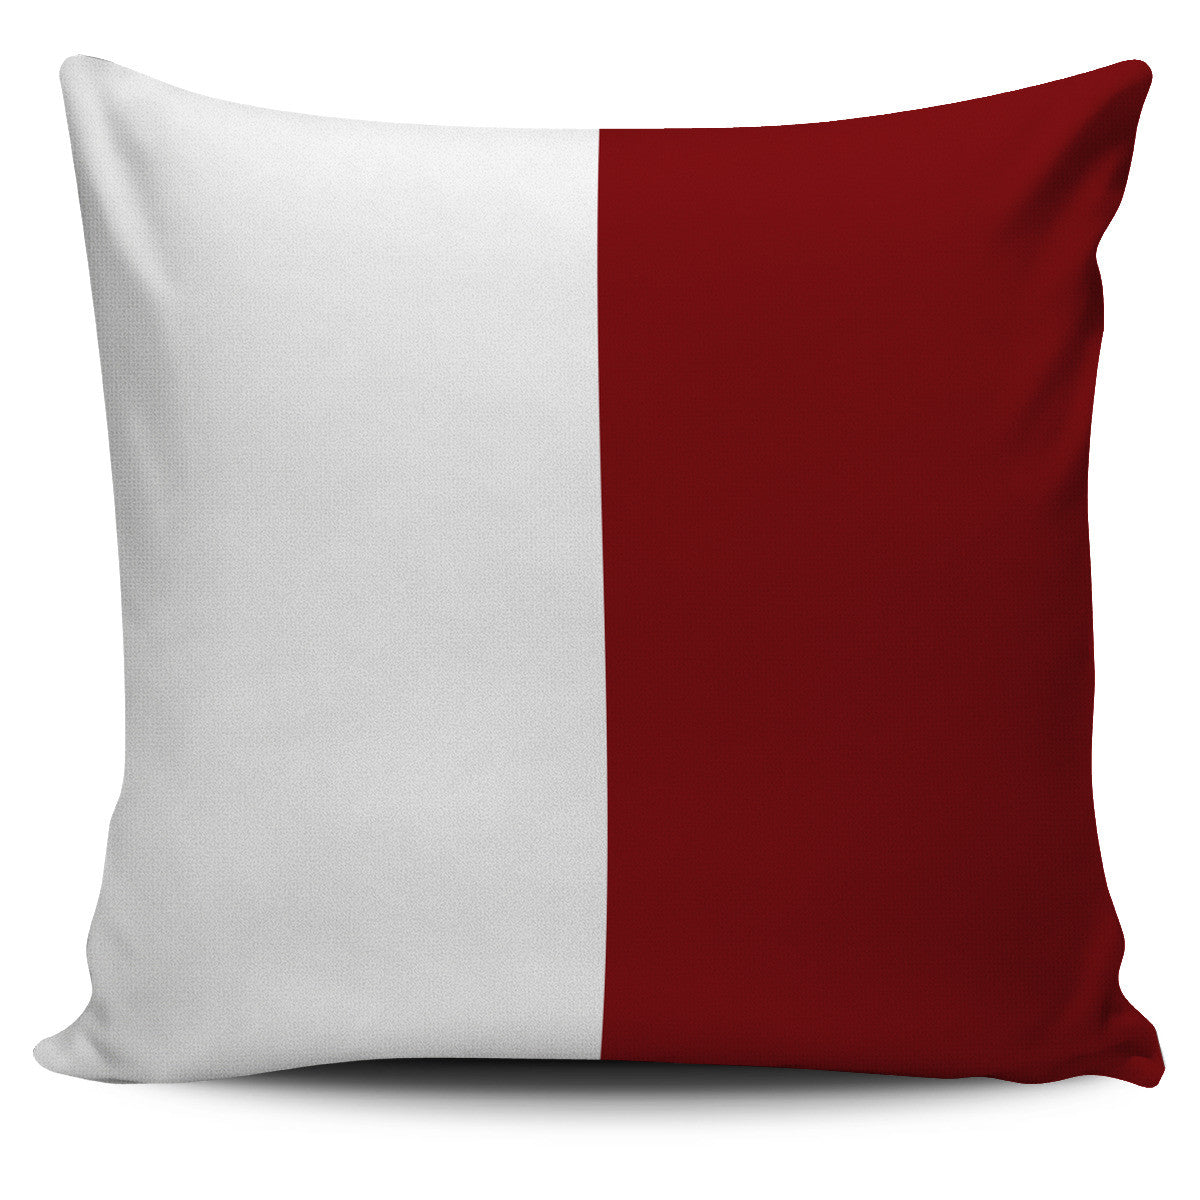 Letter H - Nautical Signal Flag Pillow Cover